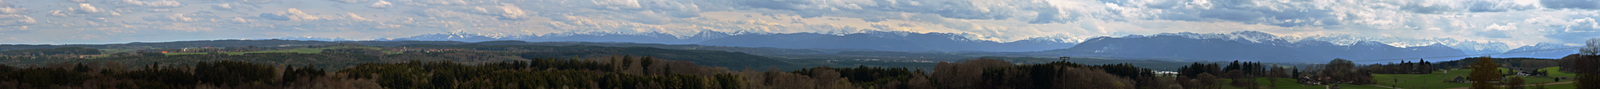 giant panorama of the Alps by Gamekiller48